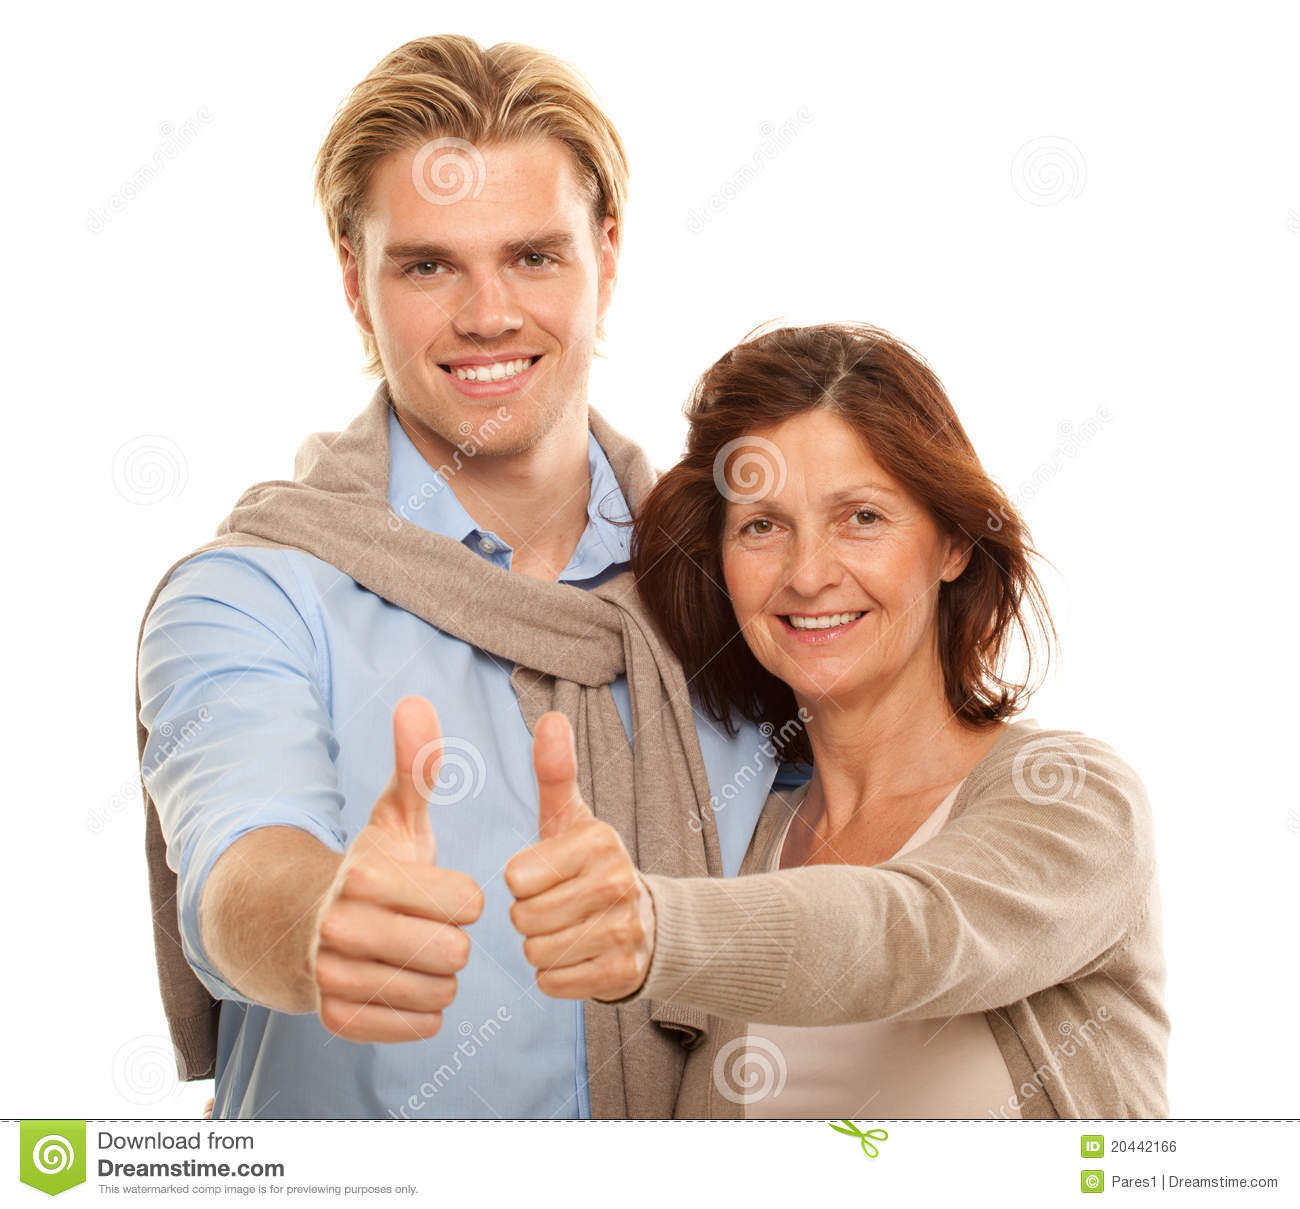 Happy Couple Sitting On Sandy Beach Embracing Kissing: Son And Mother Stock Photo. Image Of Beauty, Present